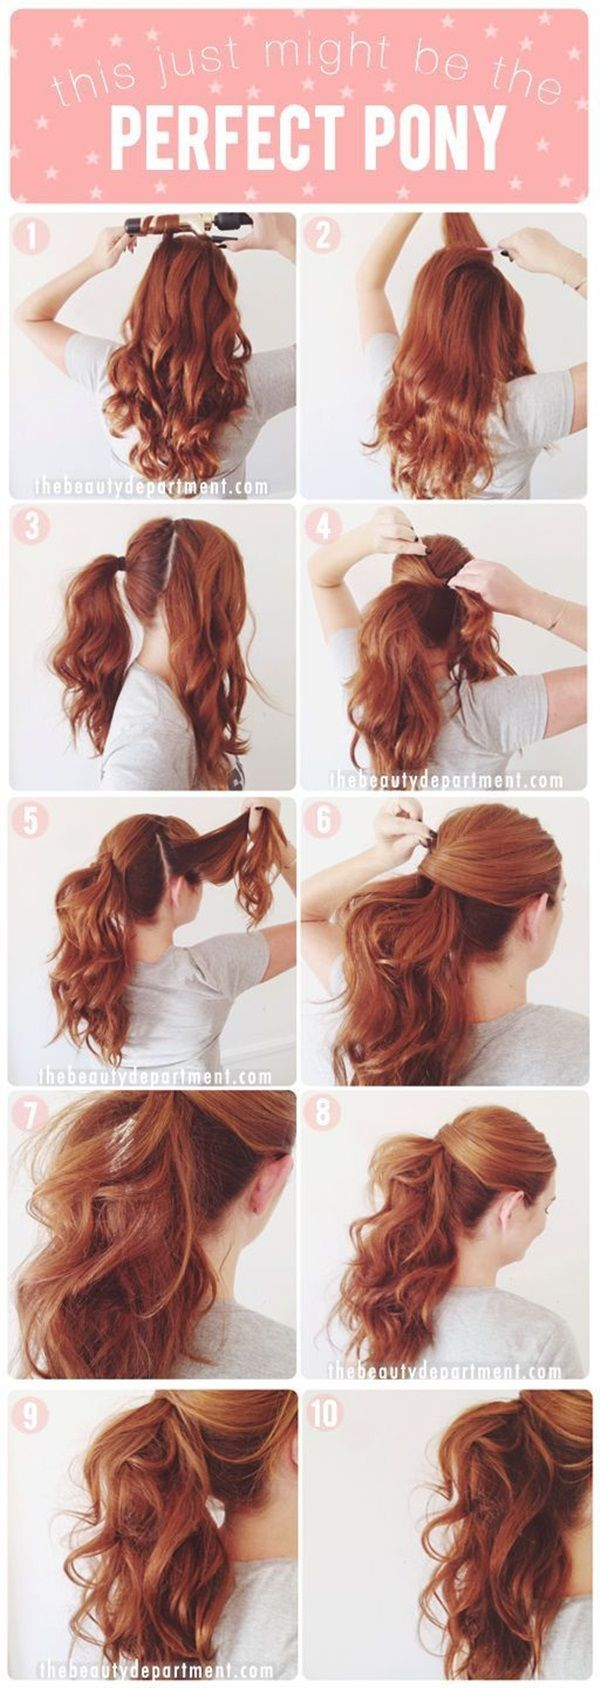 Groovy 1000 Ideas About Diy Hairstyles On Pinterest Easy Diy Hairstyles For Men Maxibearus